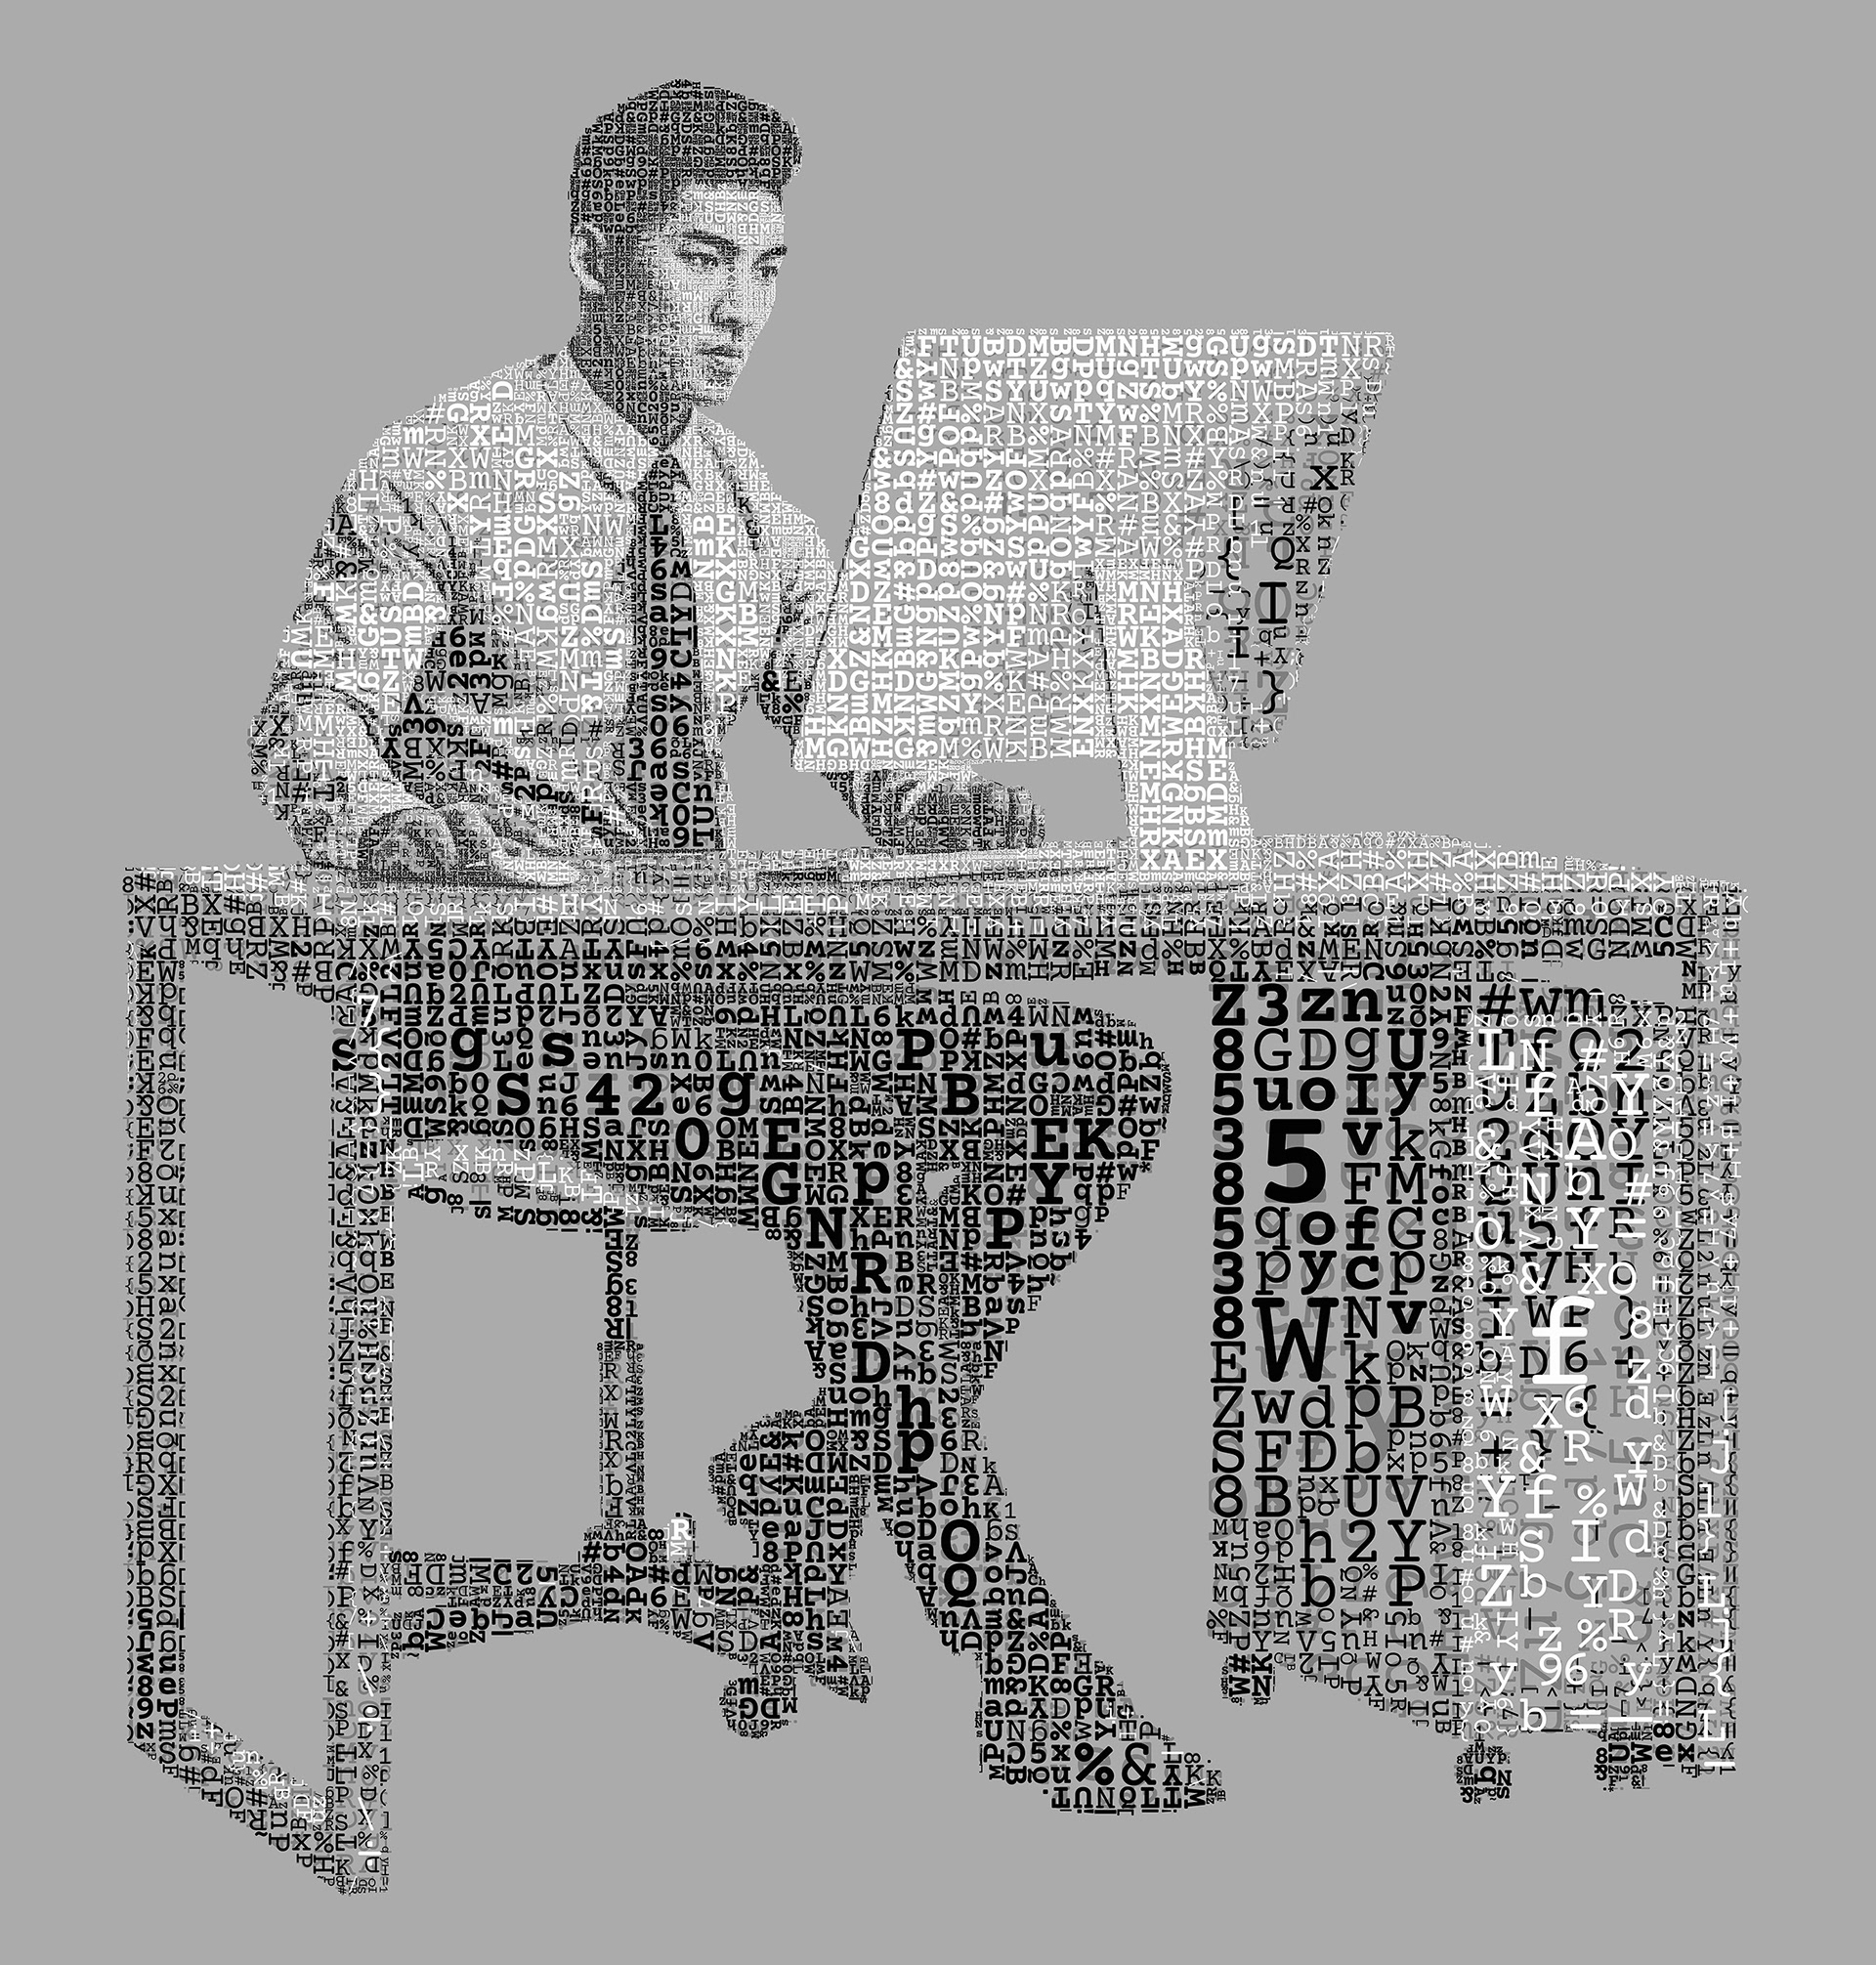 A working guy sitting on his desk staring at the computer monitor